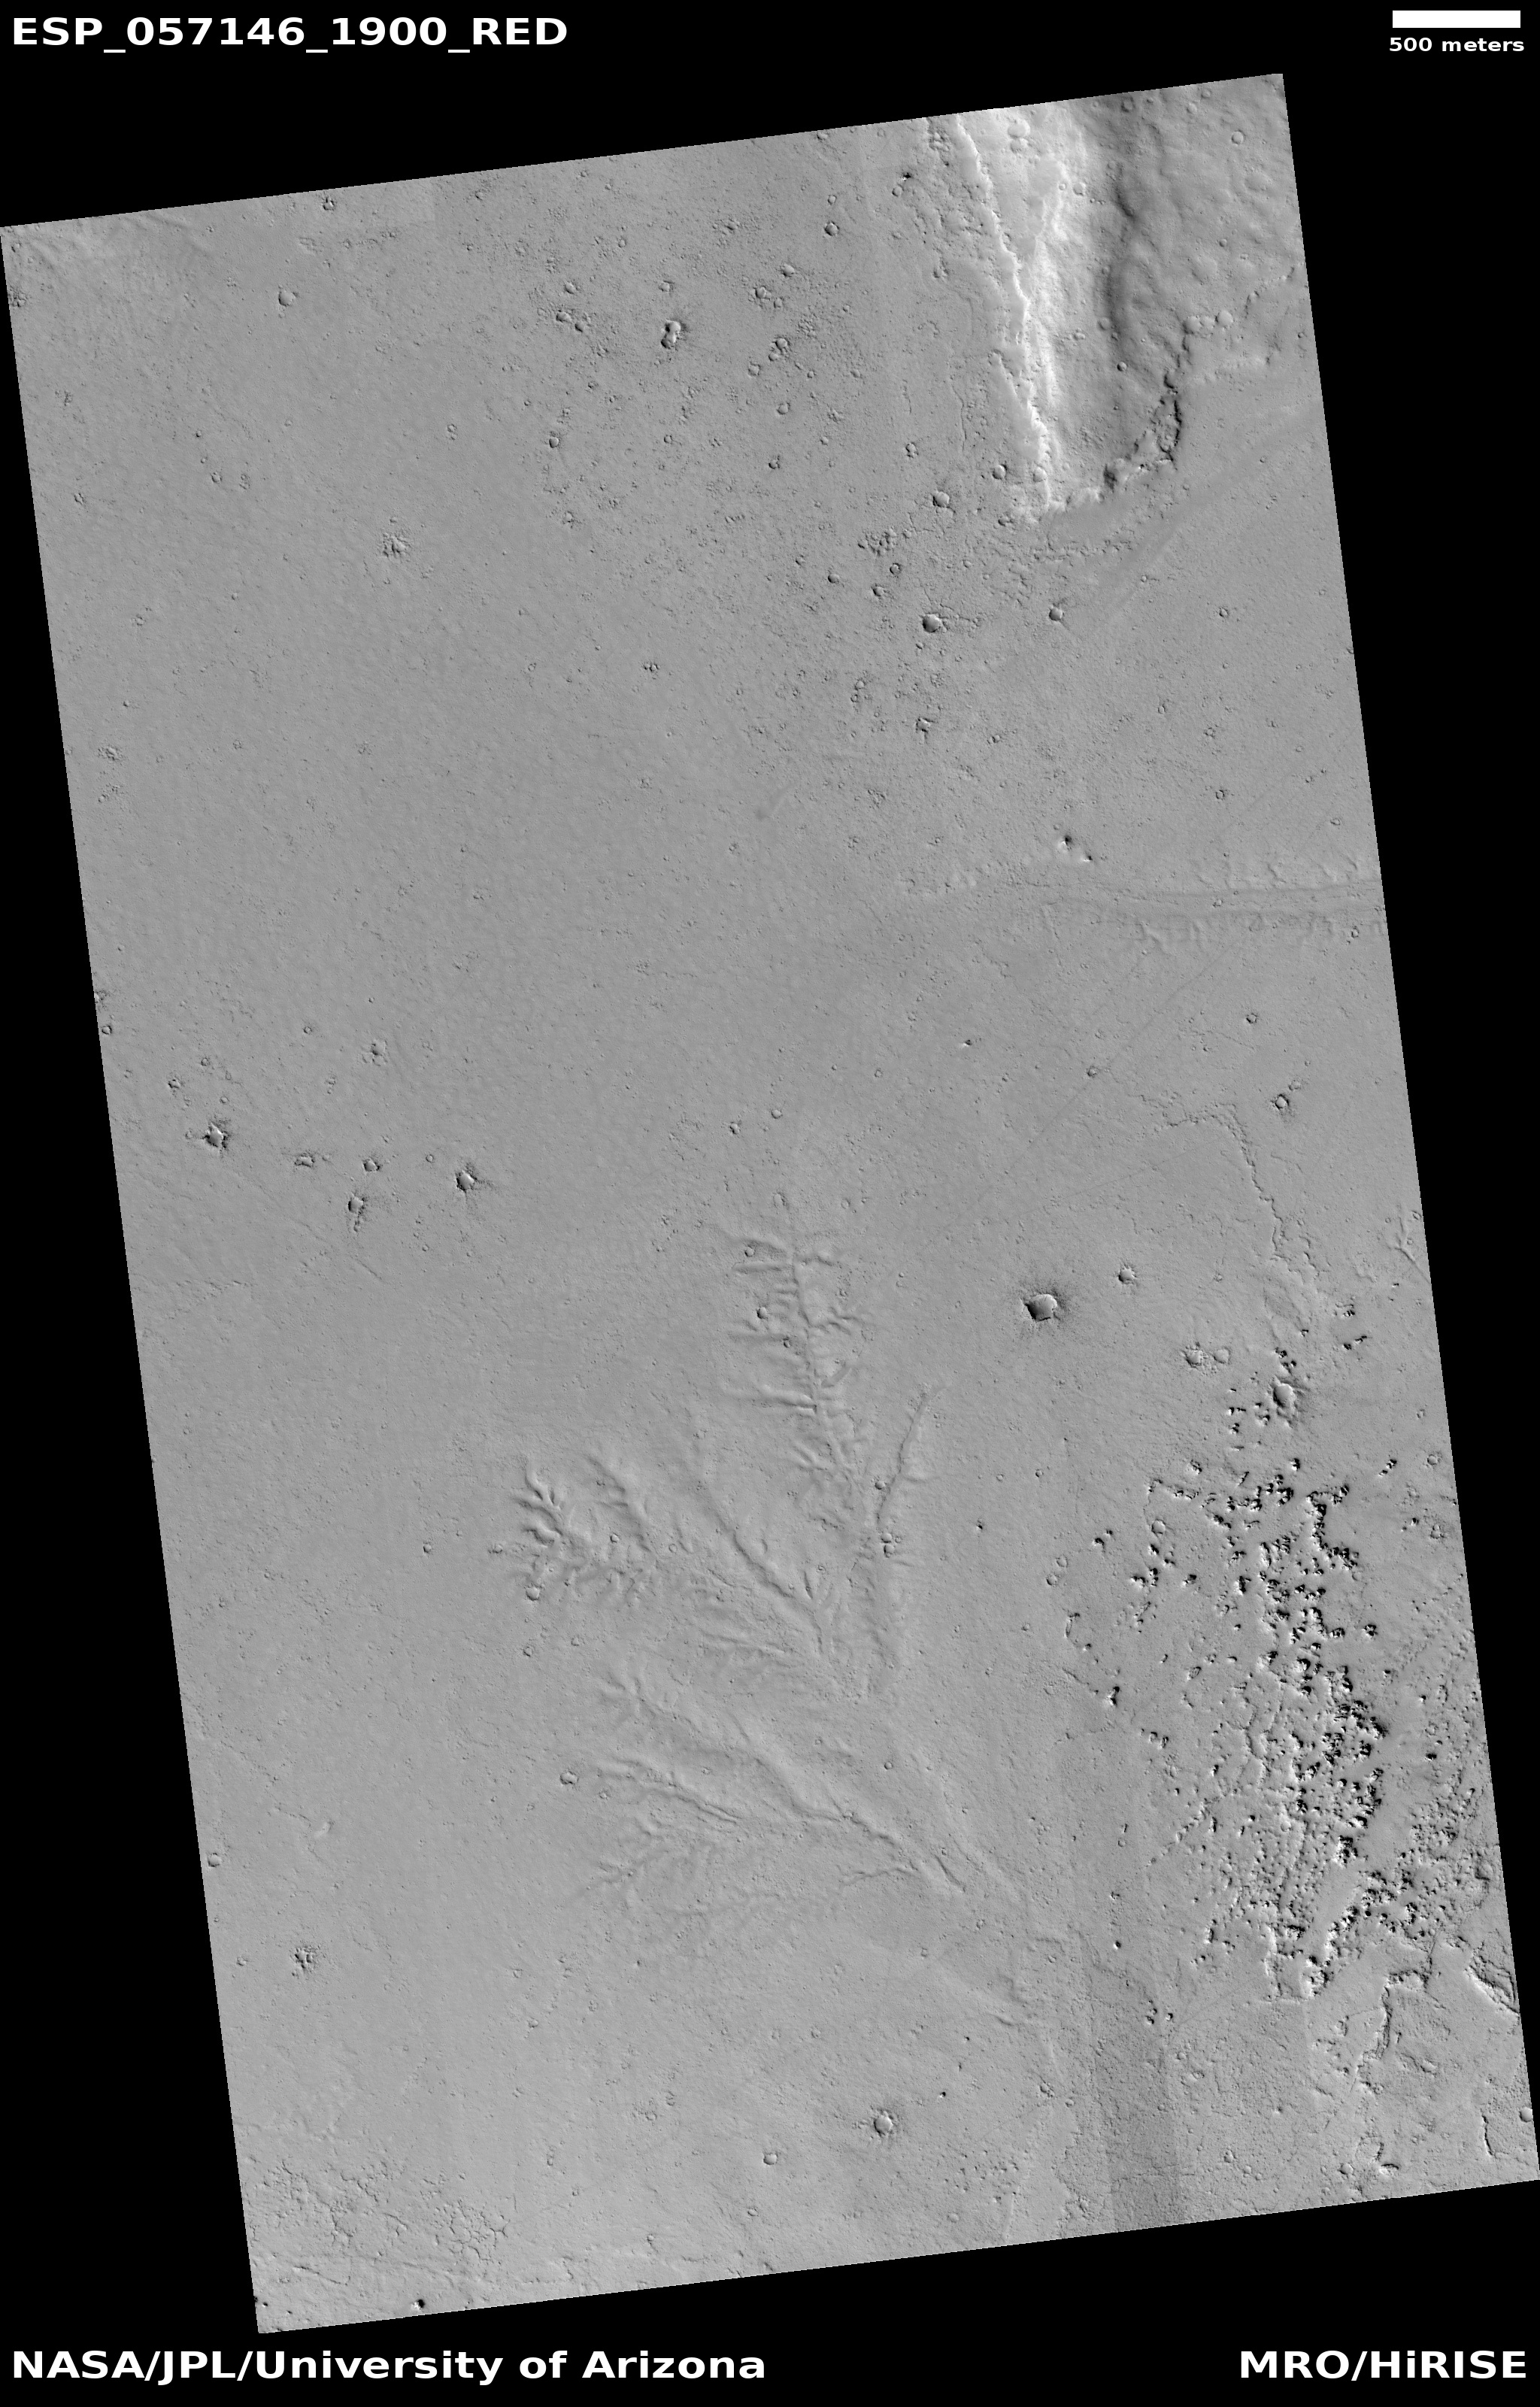 Channel network, as seen by HiRISE under HiWish program